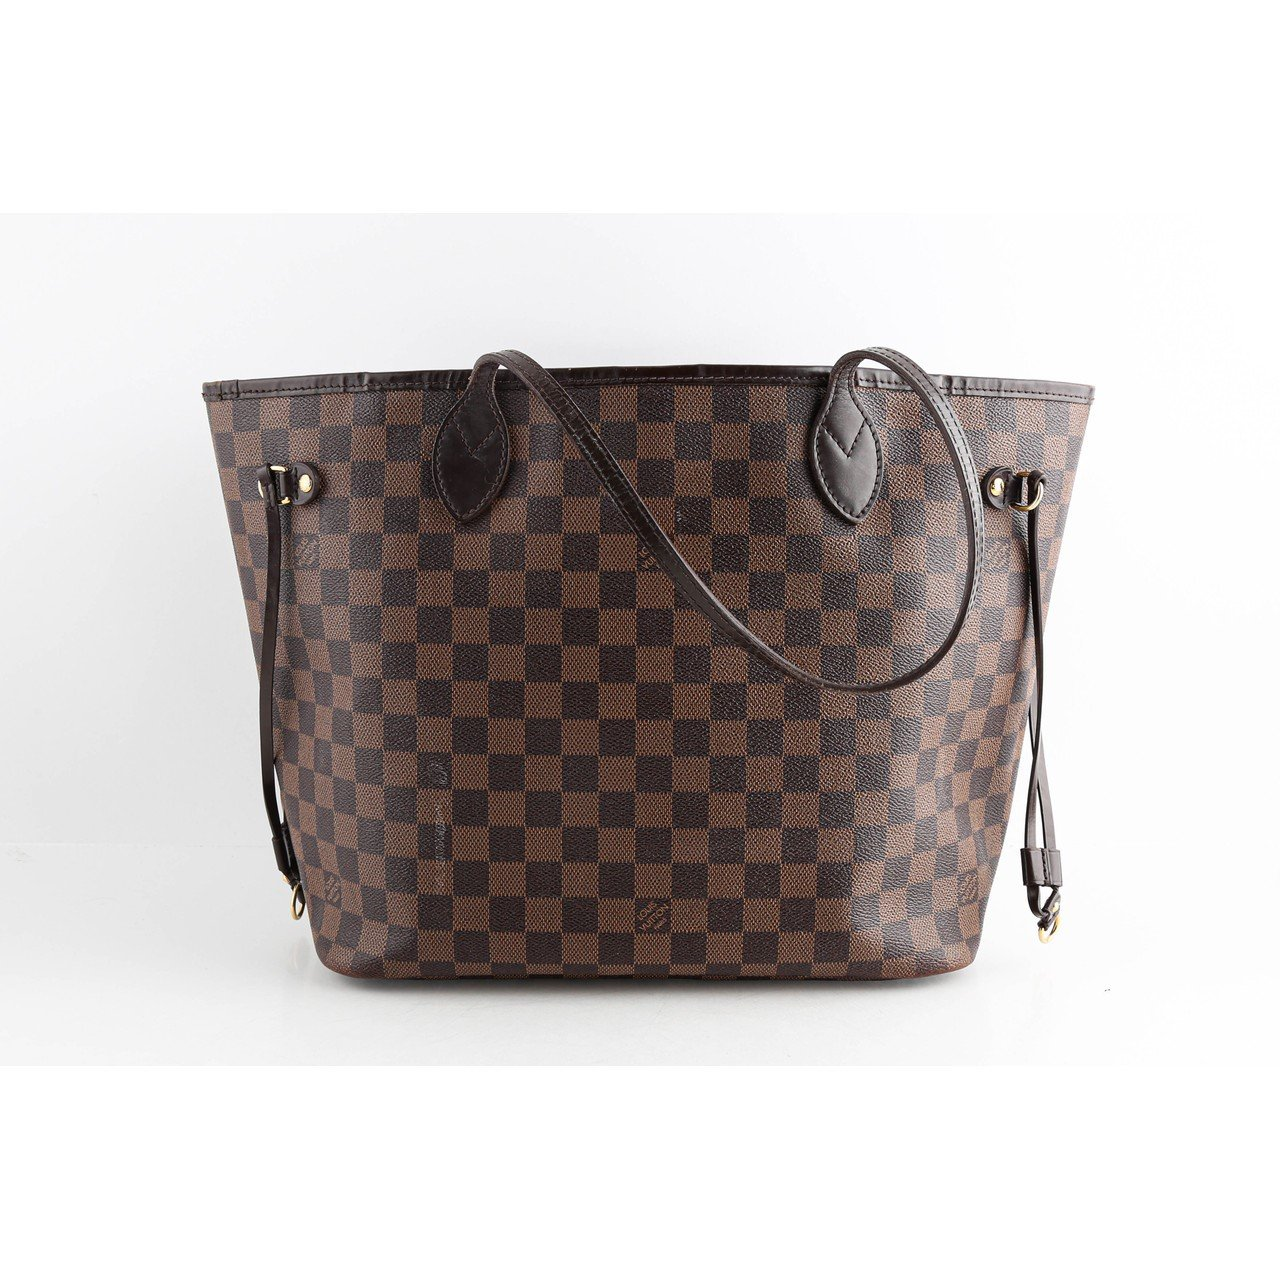 Louis Vuitton Neverfull Tote